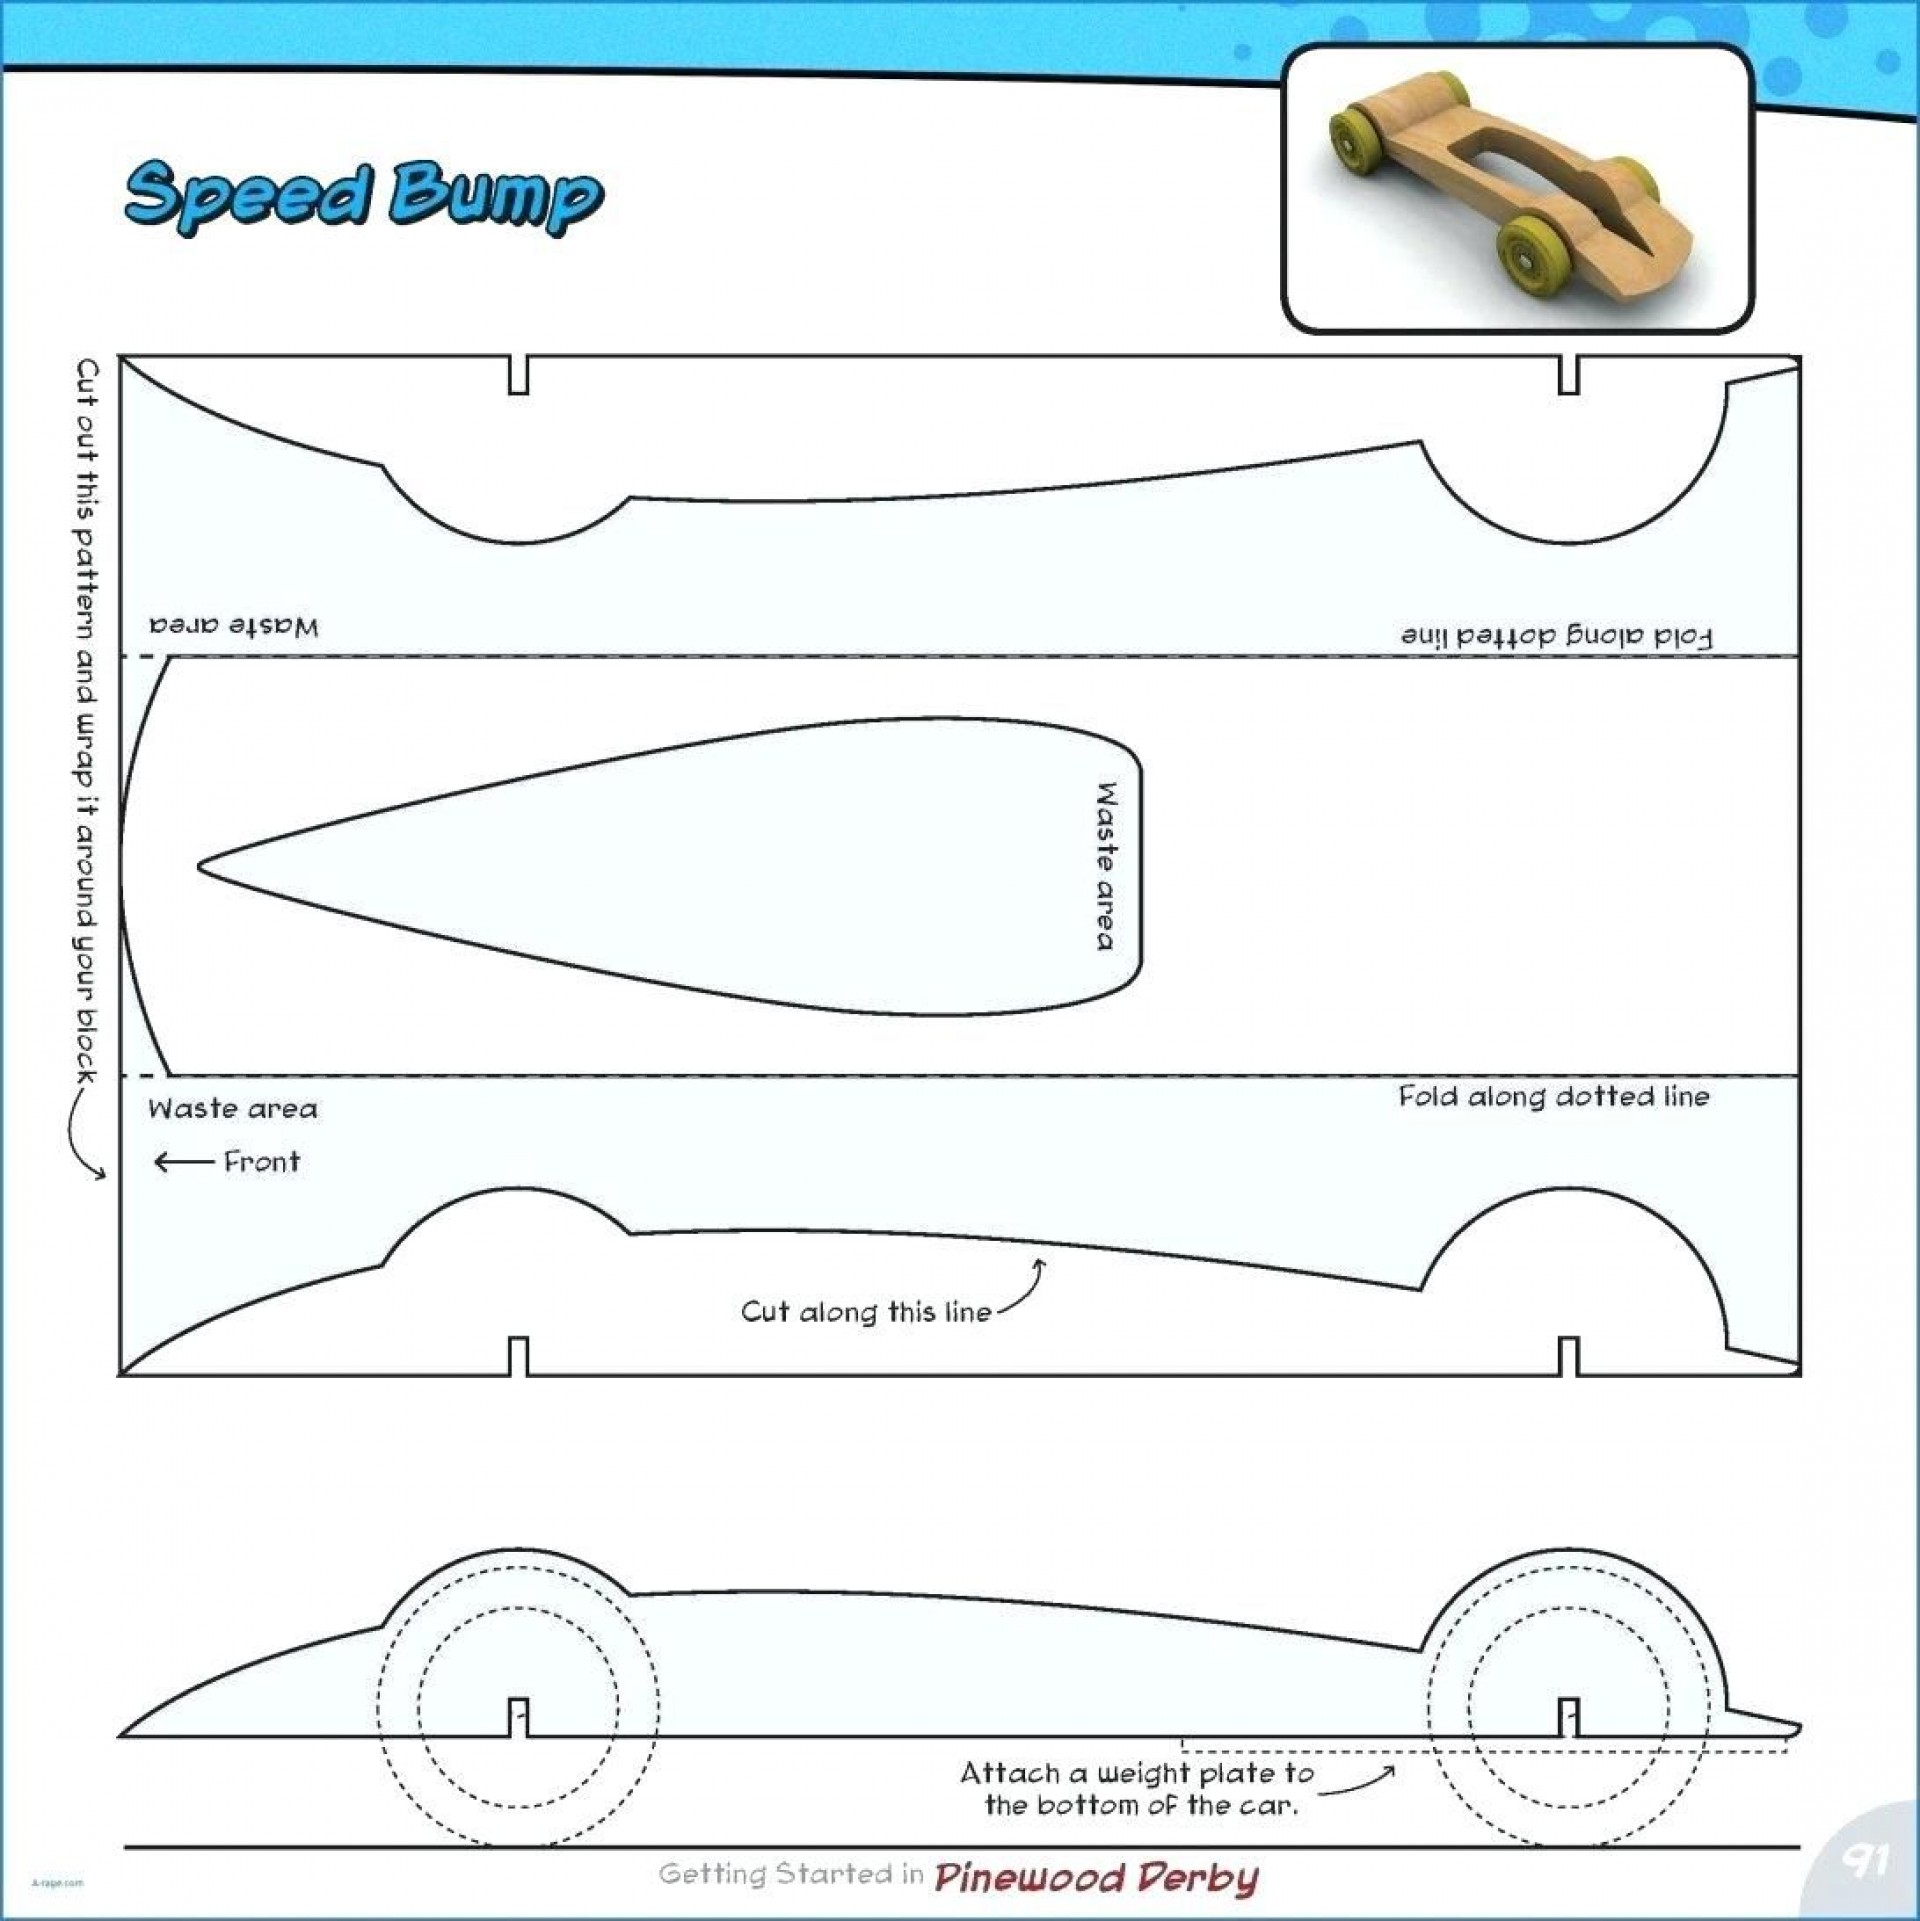 007 Awful Fastest Pinewood Derby Car Template Highest Clarity  Templates World Design1920